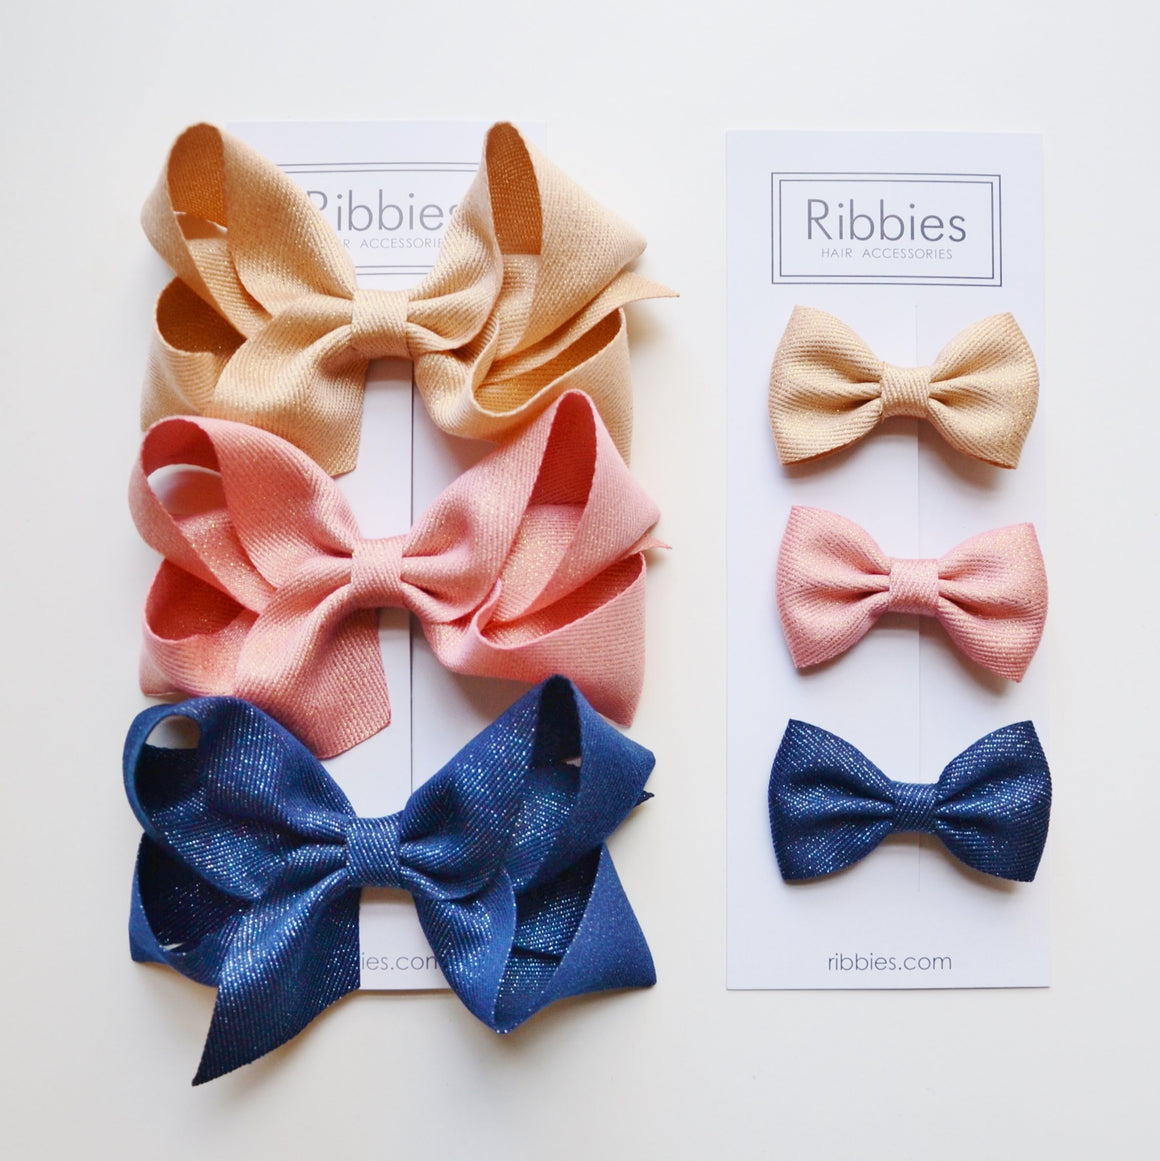 Set de 3 Barrettes Anti-Glisse à Très Grand Nœud Brillant - Doré, Rose Blush & Bleu Marine